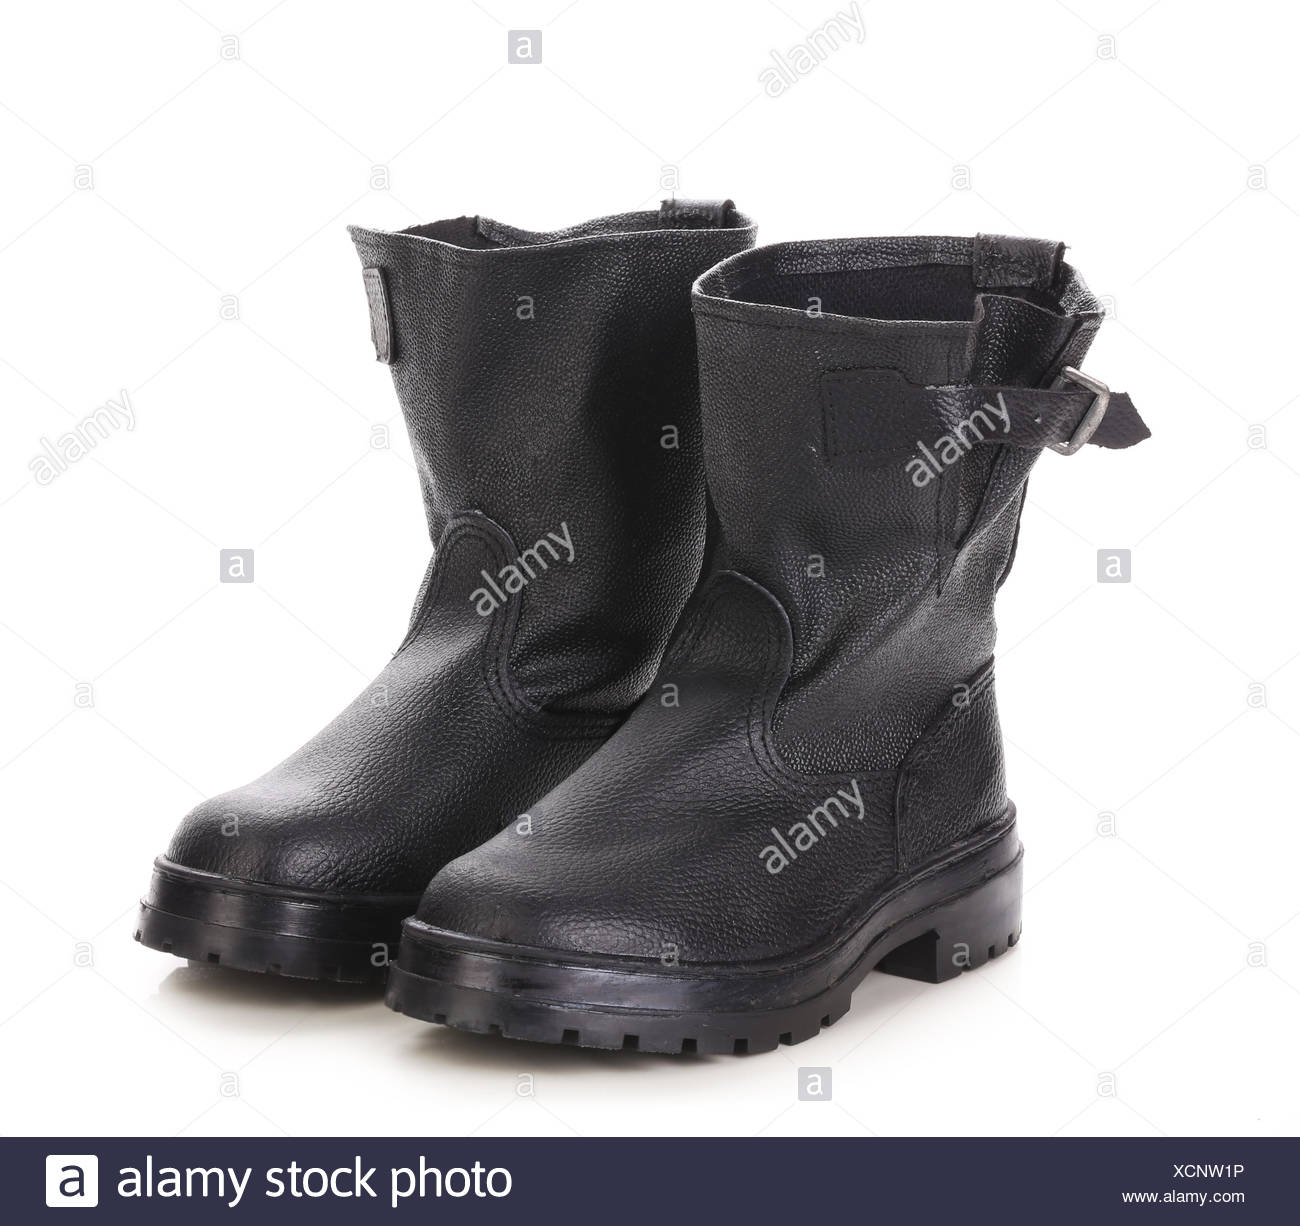 362fbadc4e4d Black kersey pair of boots close up Stock Photo  283222402 - Alamy